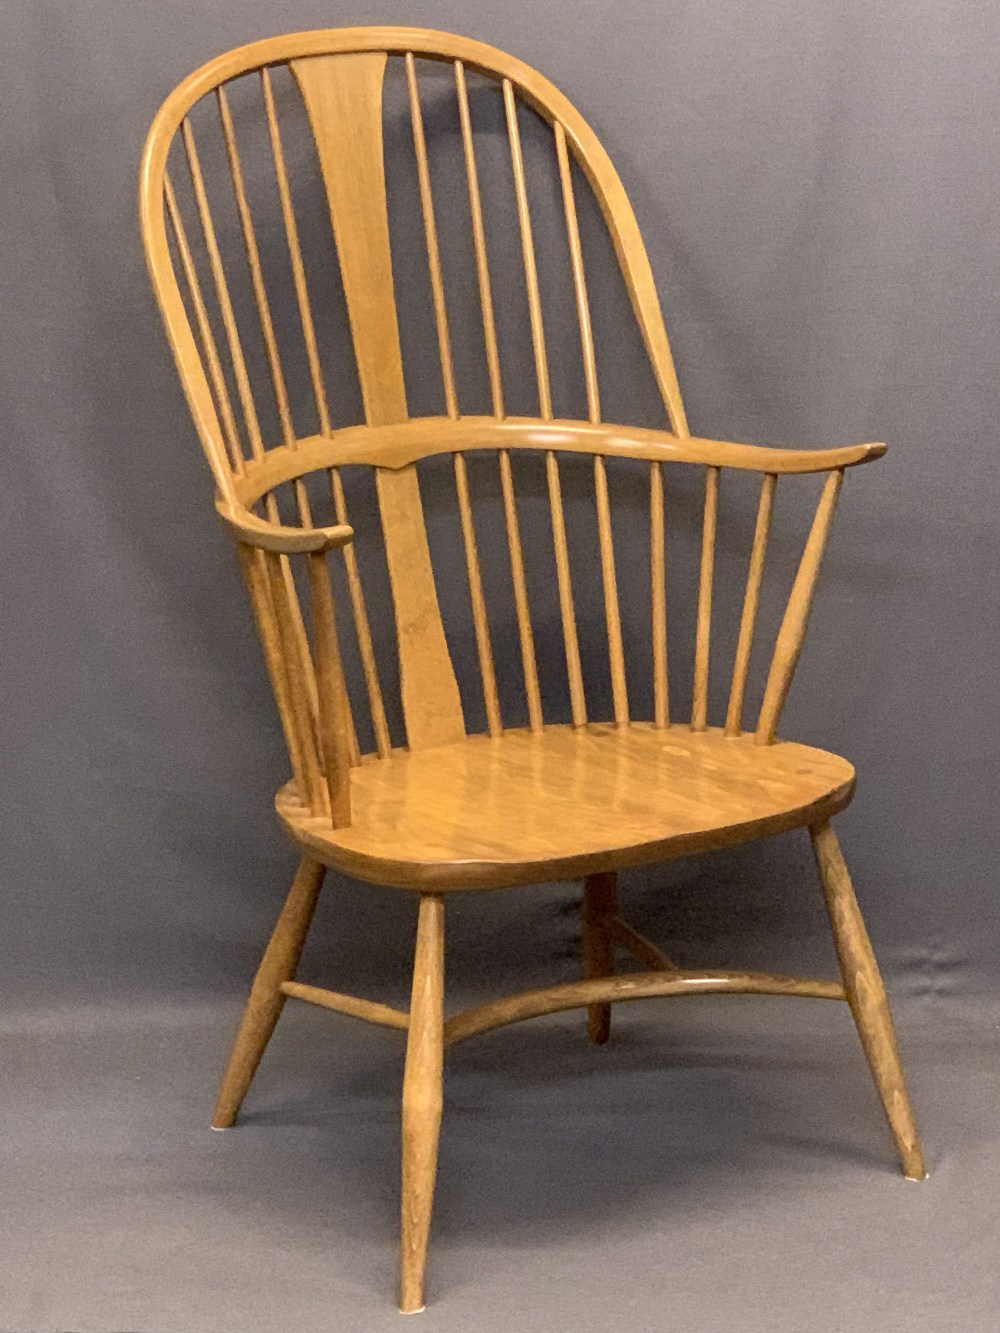 LIGHT ERCOL WINDSOR STYLE ARMCHAIR - with hoop back, crinoline type stretcher and removable - Image 2 of 5